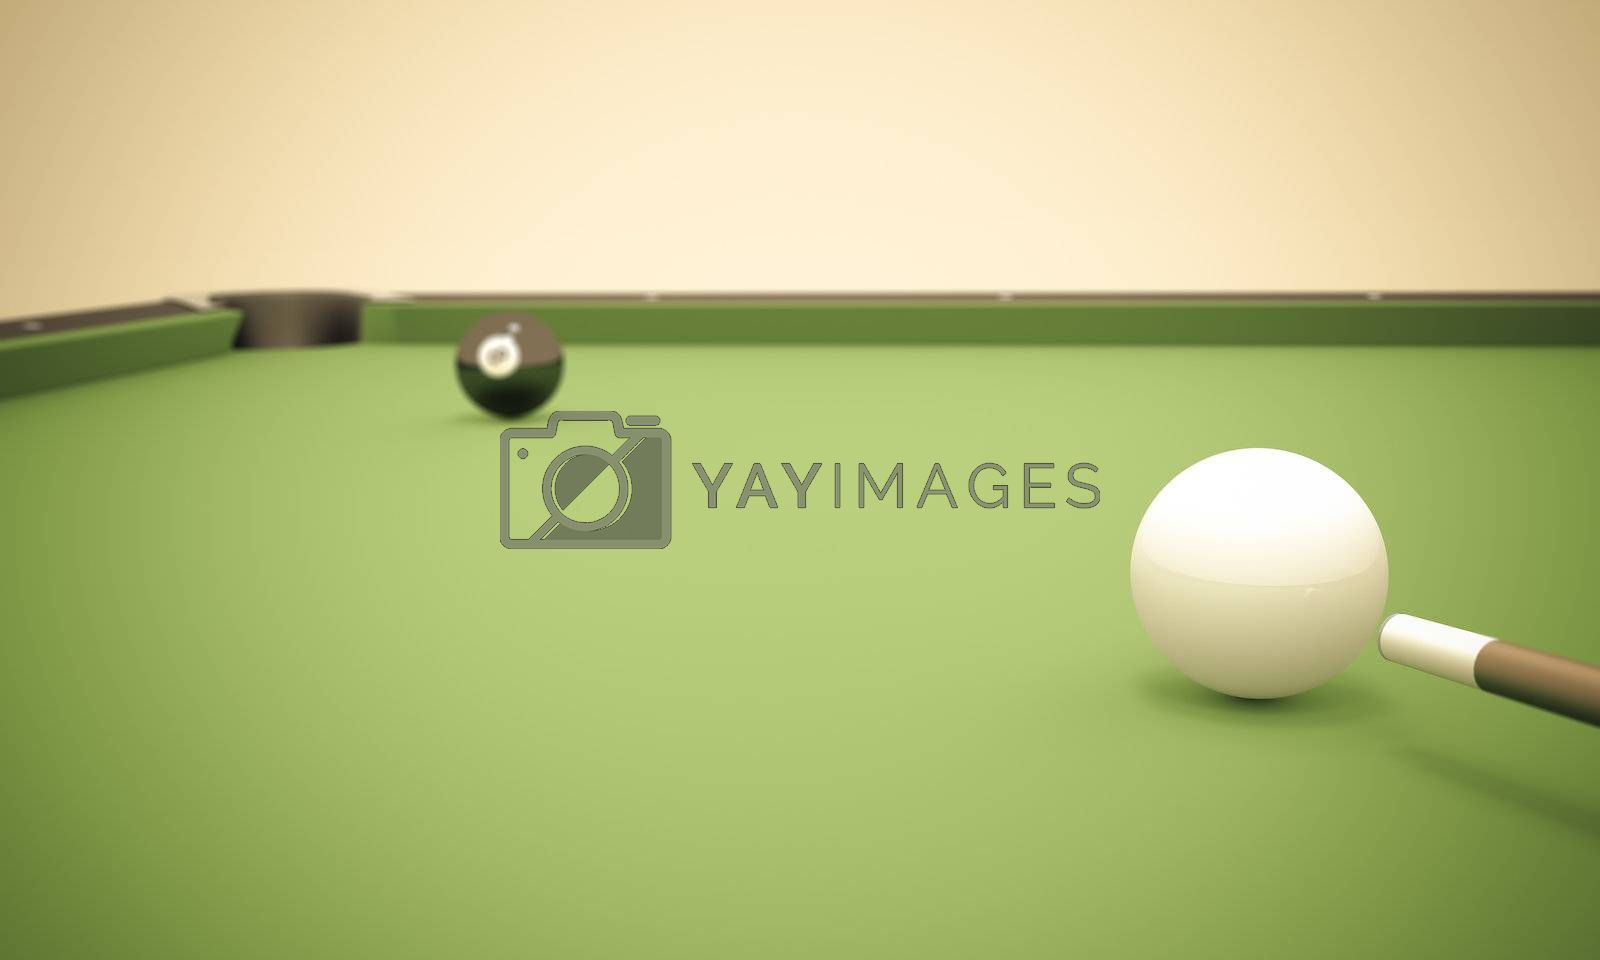 A white ball in the center of a pool table aiming at the 8 ball near the left corner pocket.